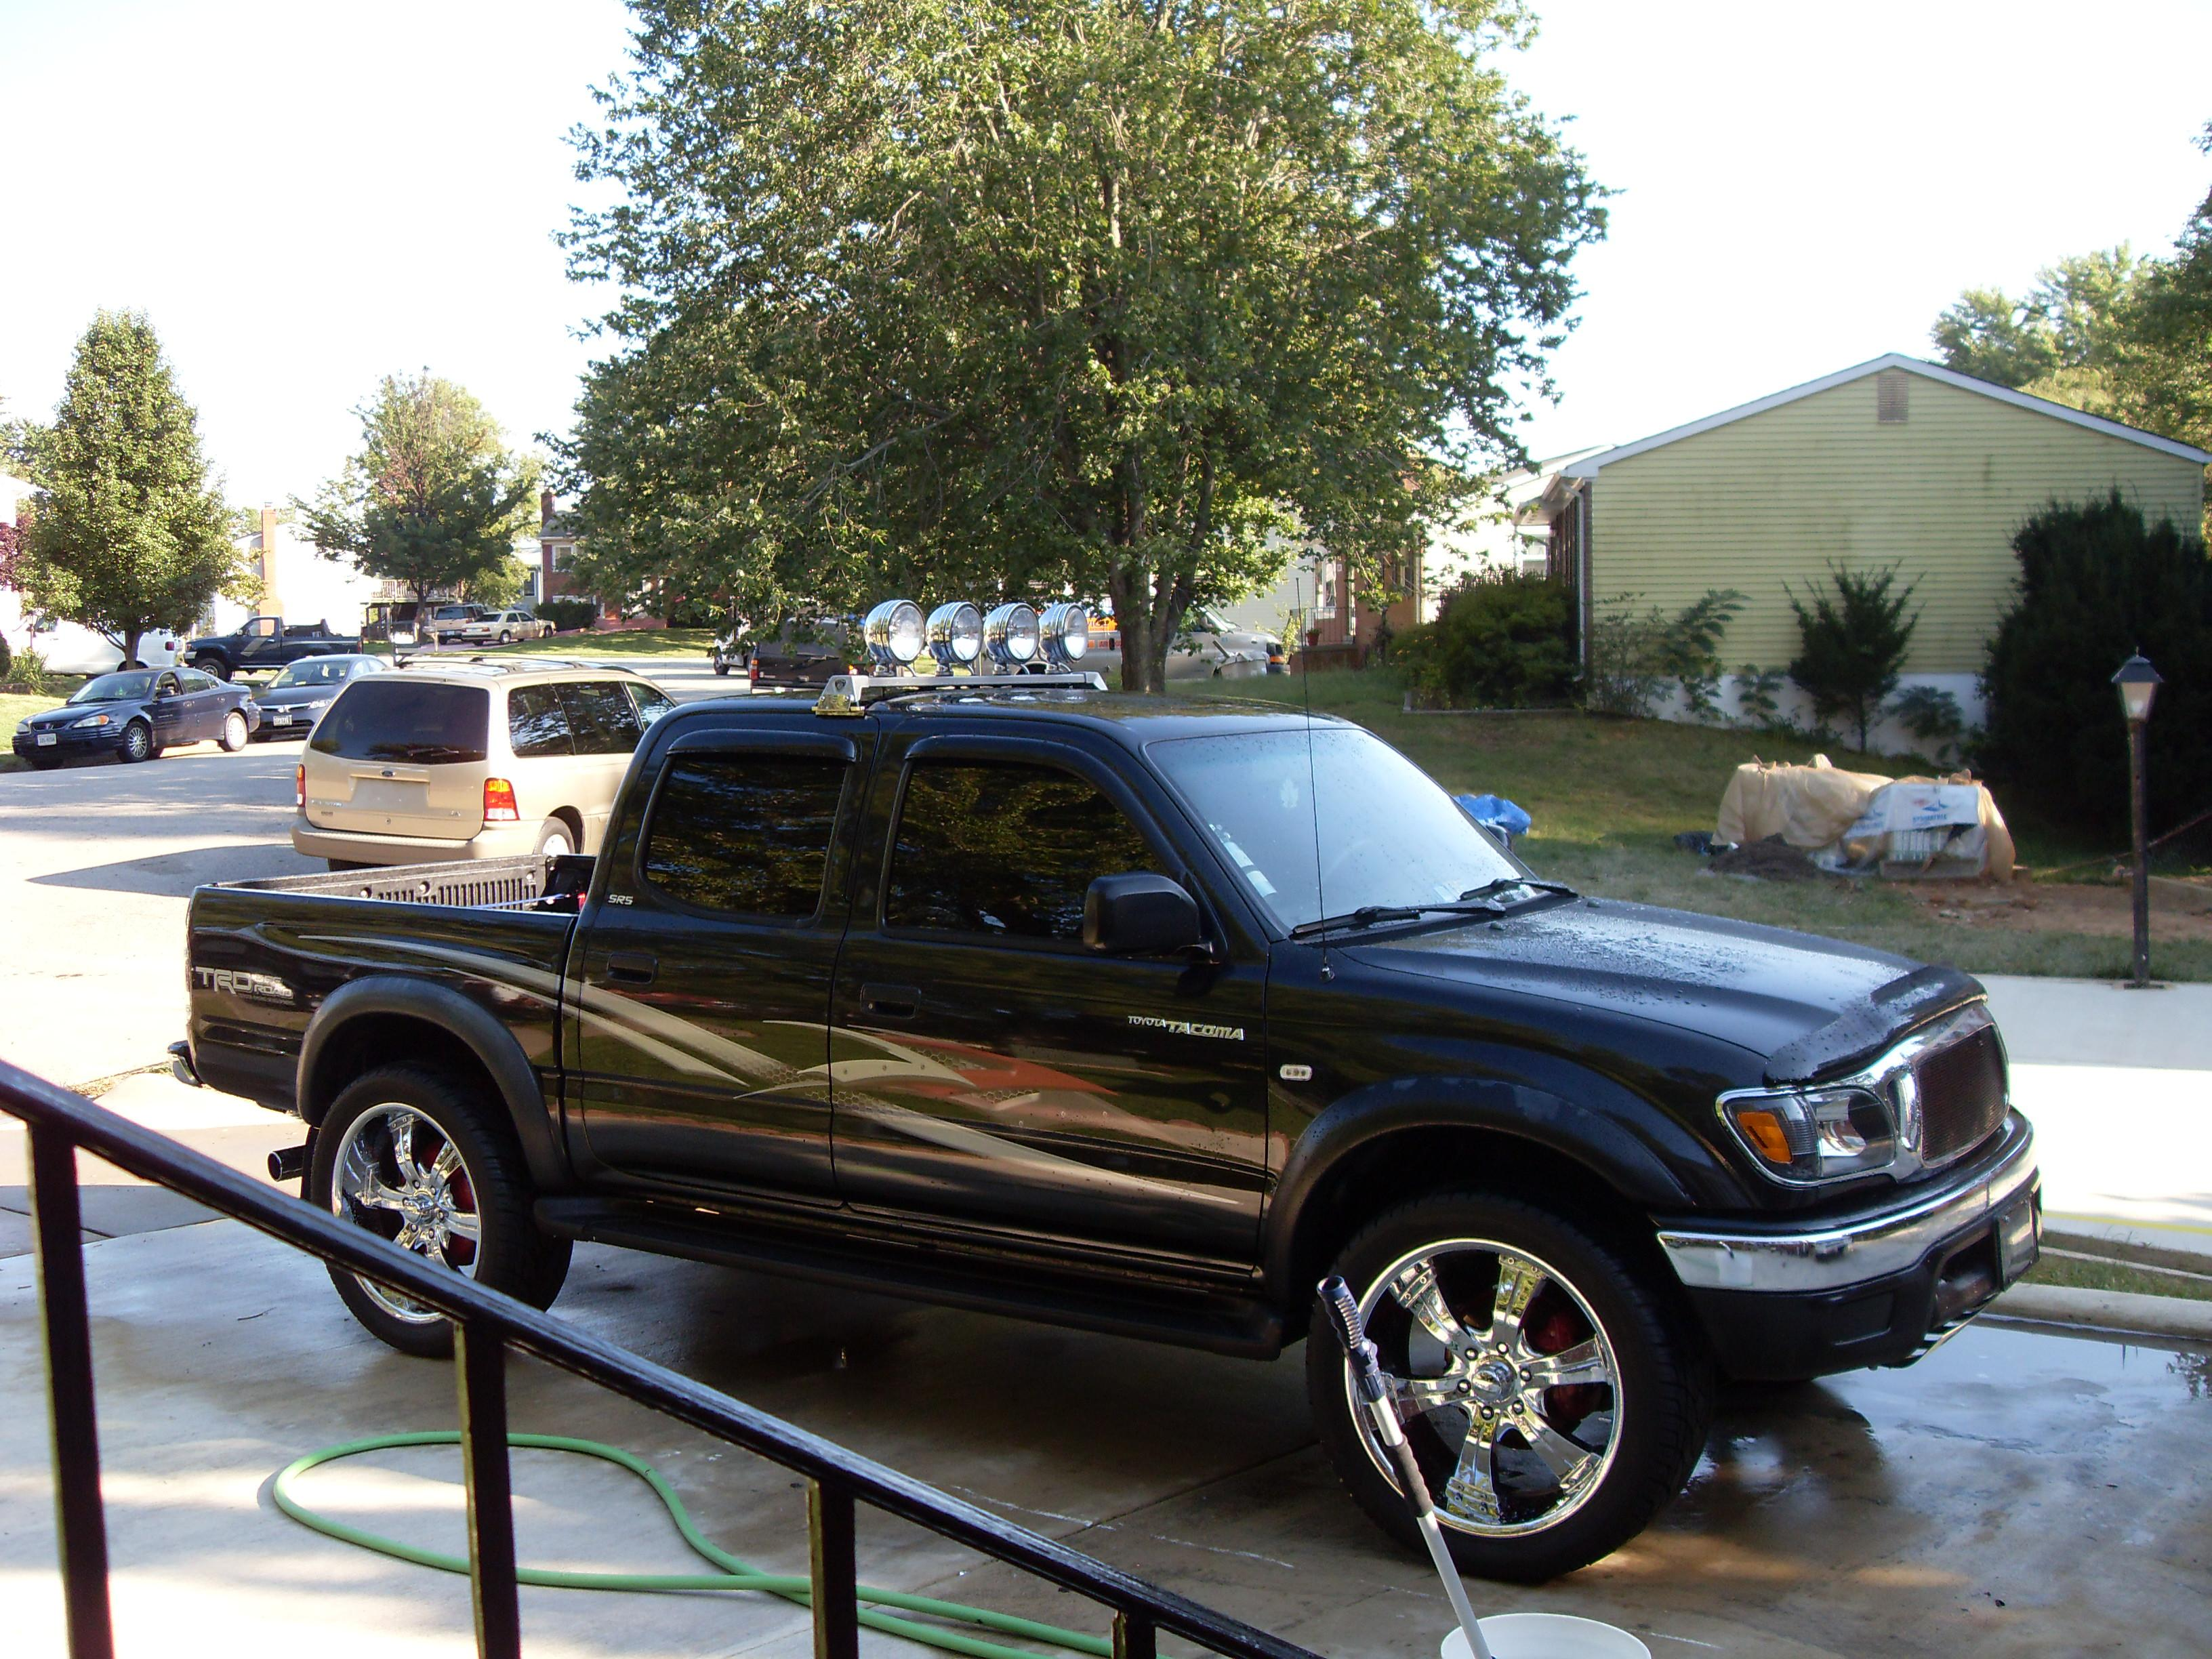 rudymejia 2002 toyota tacoma xtra cab specs photos modification info at cardomain. Black Bedroom Furniture Sets. Home Design Ideas